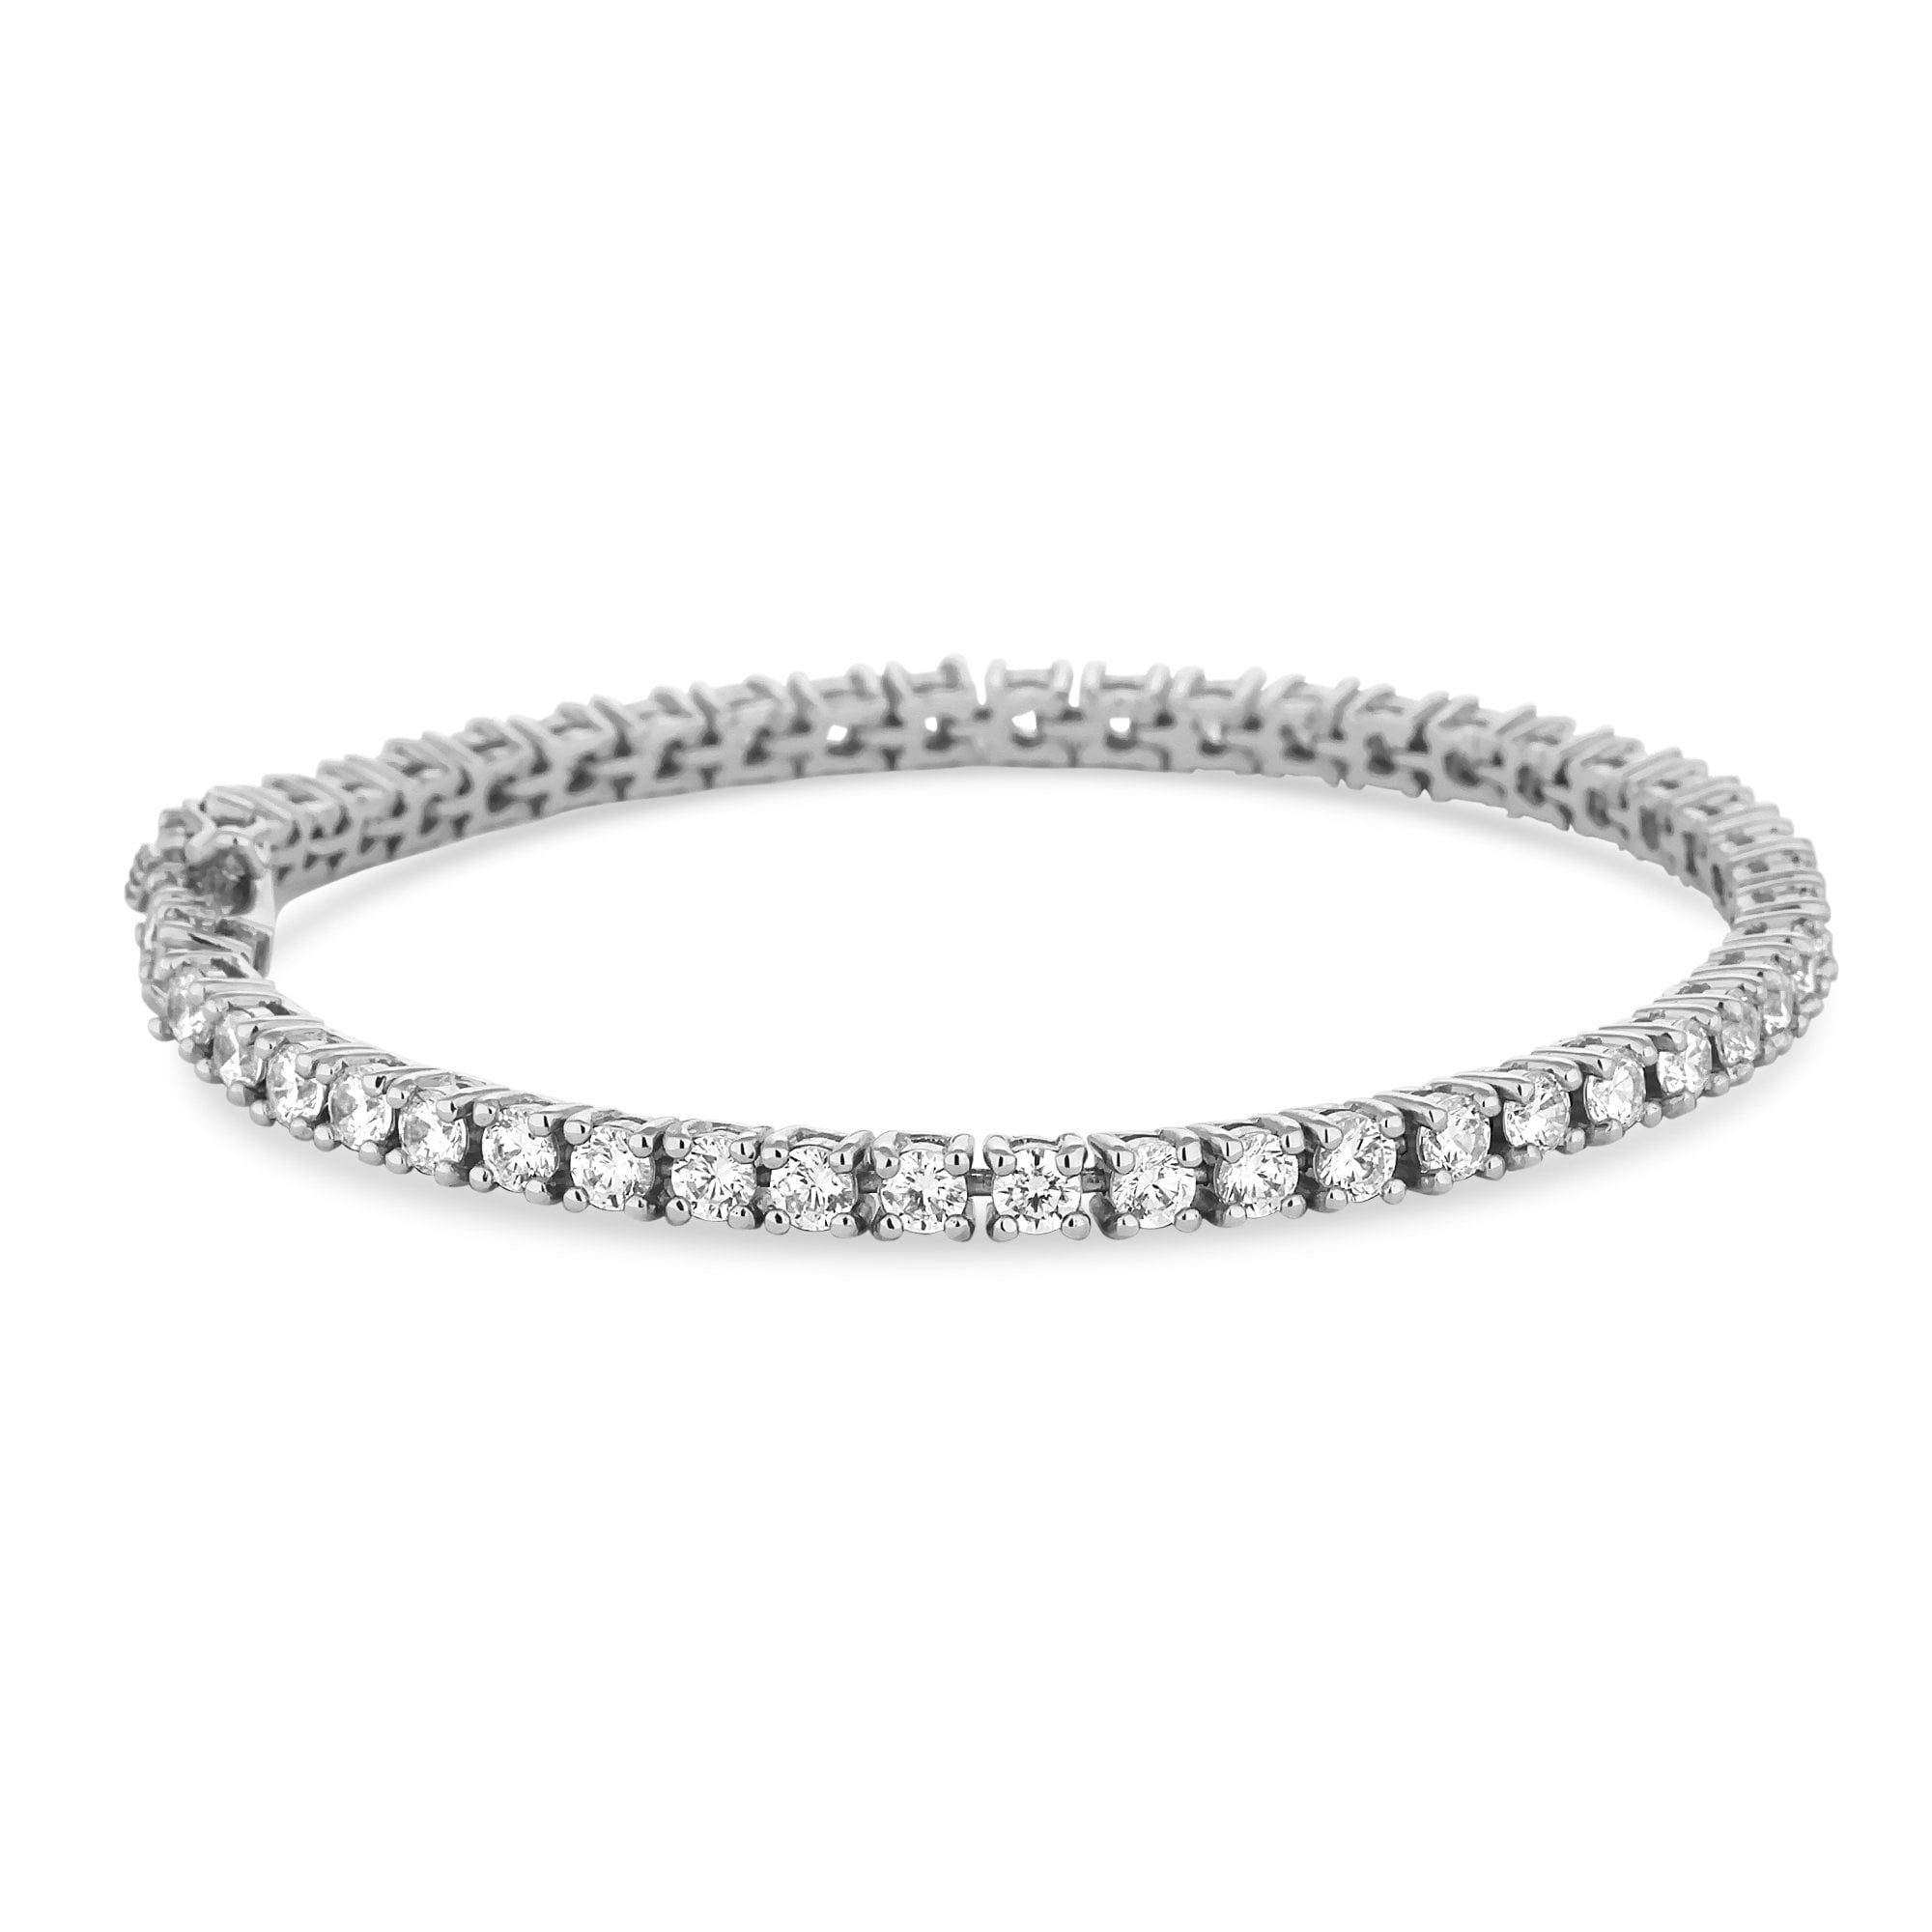 Ladies Rubover Tennis 925 Sterling Silver Bracelet with Cubic Zirconia Stones